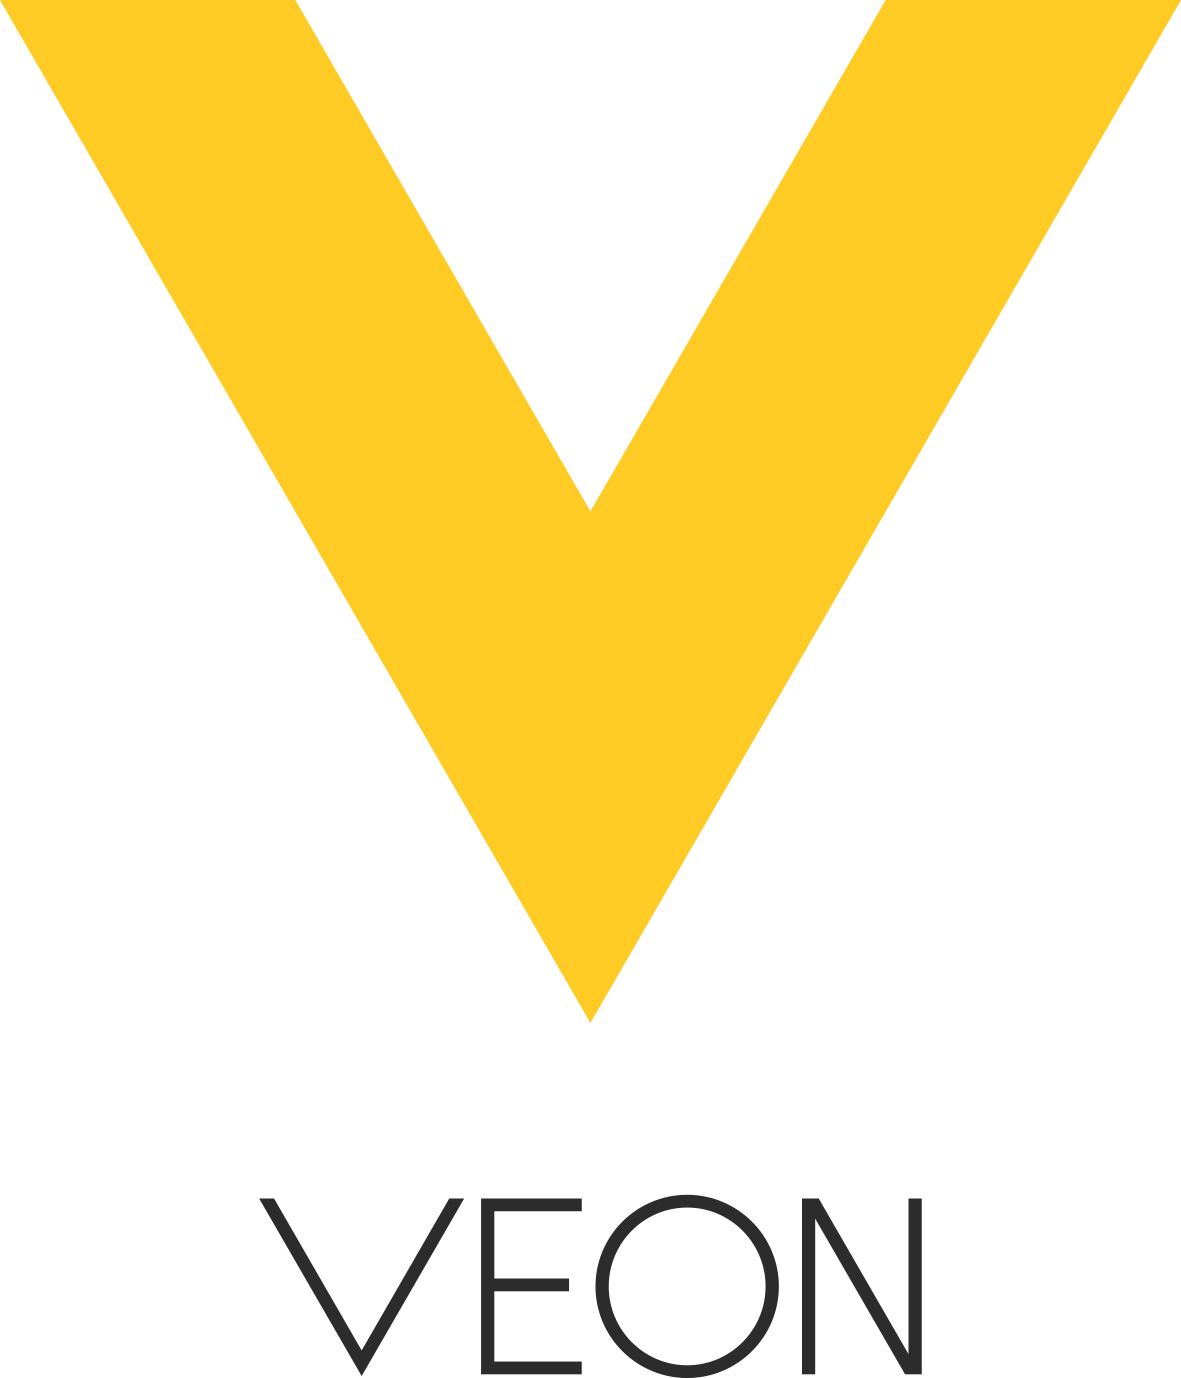 VEON WHOLESALE SERVICES B.V.